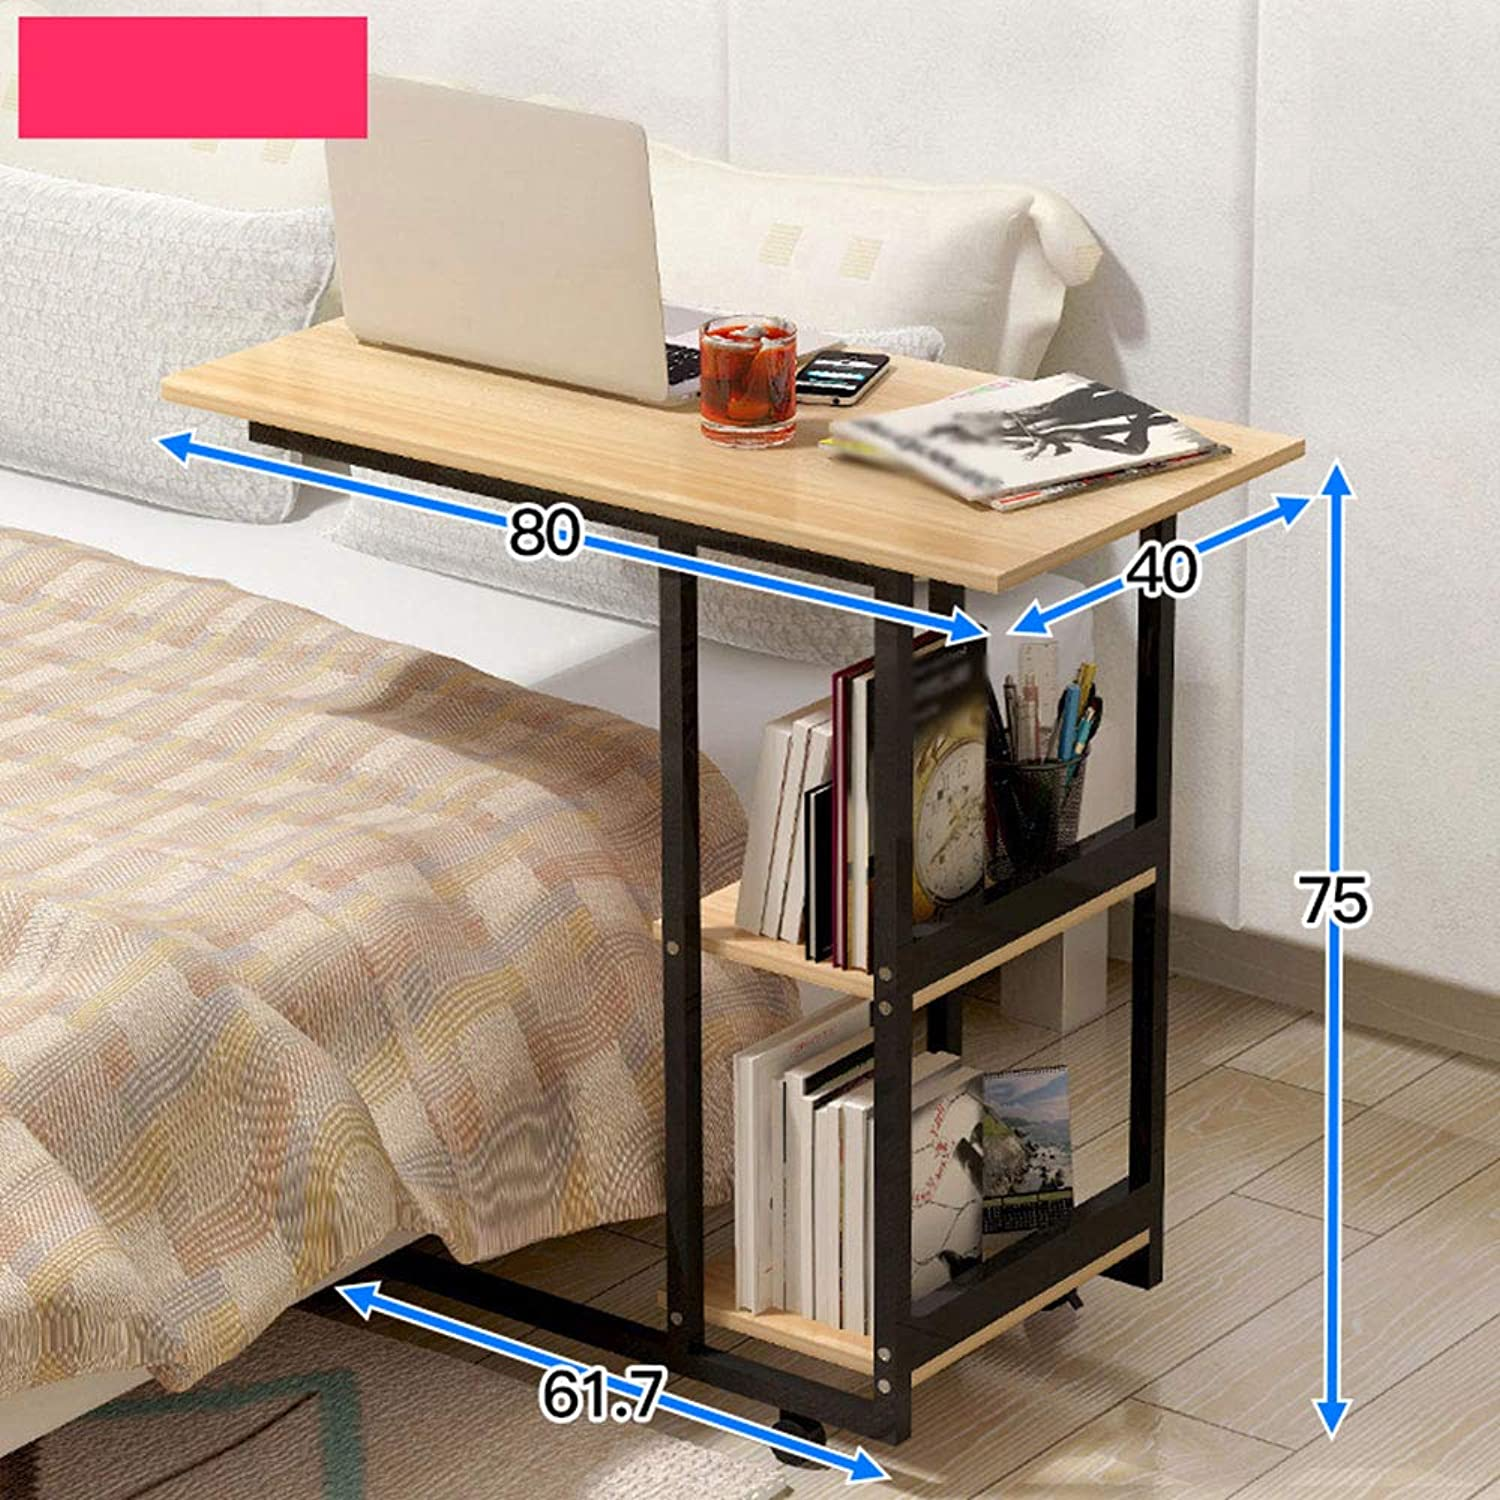 Bedside Laptop Desk, Removable Bedroom Living Room Small Coffee Table Bedside Table Sofa Side Cabinet Portable Table (color   4, Size   80  40  75cm)